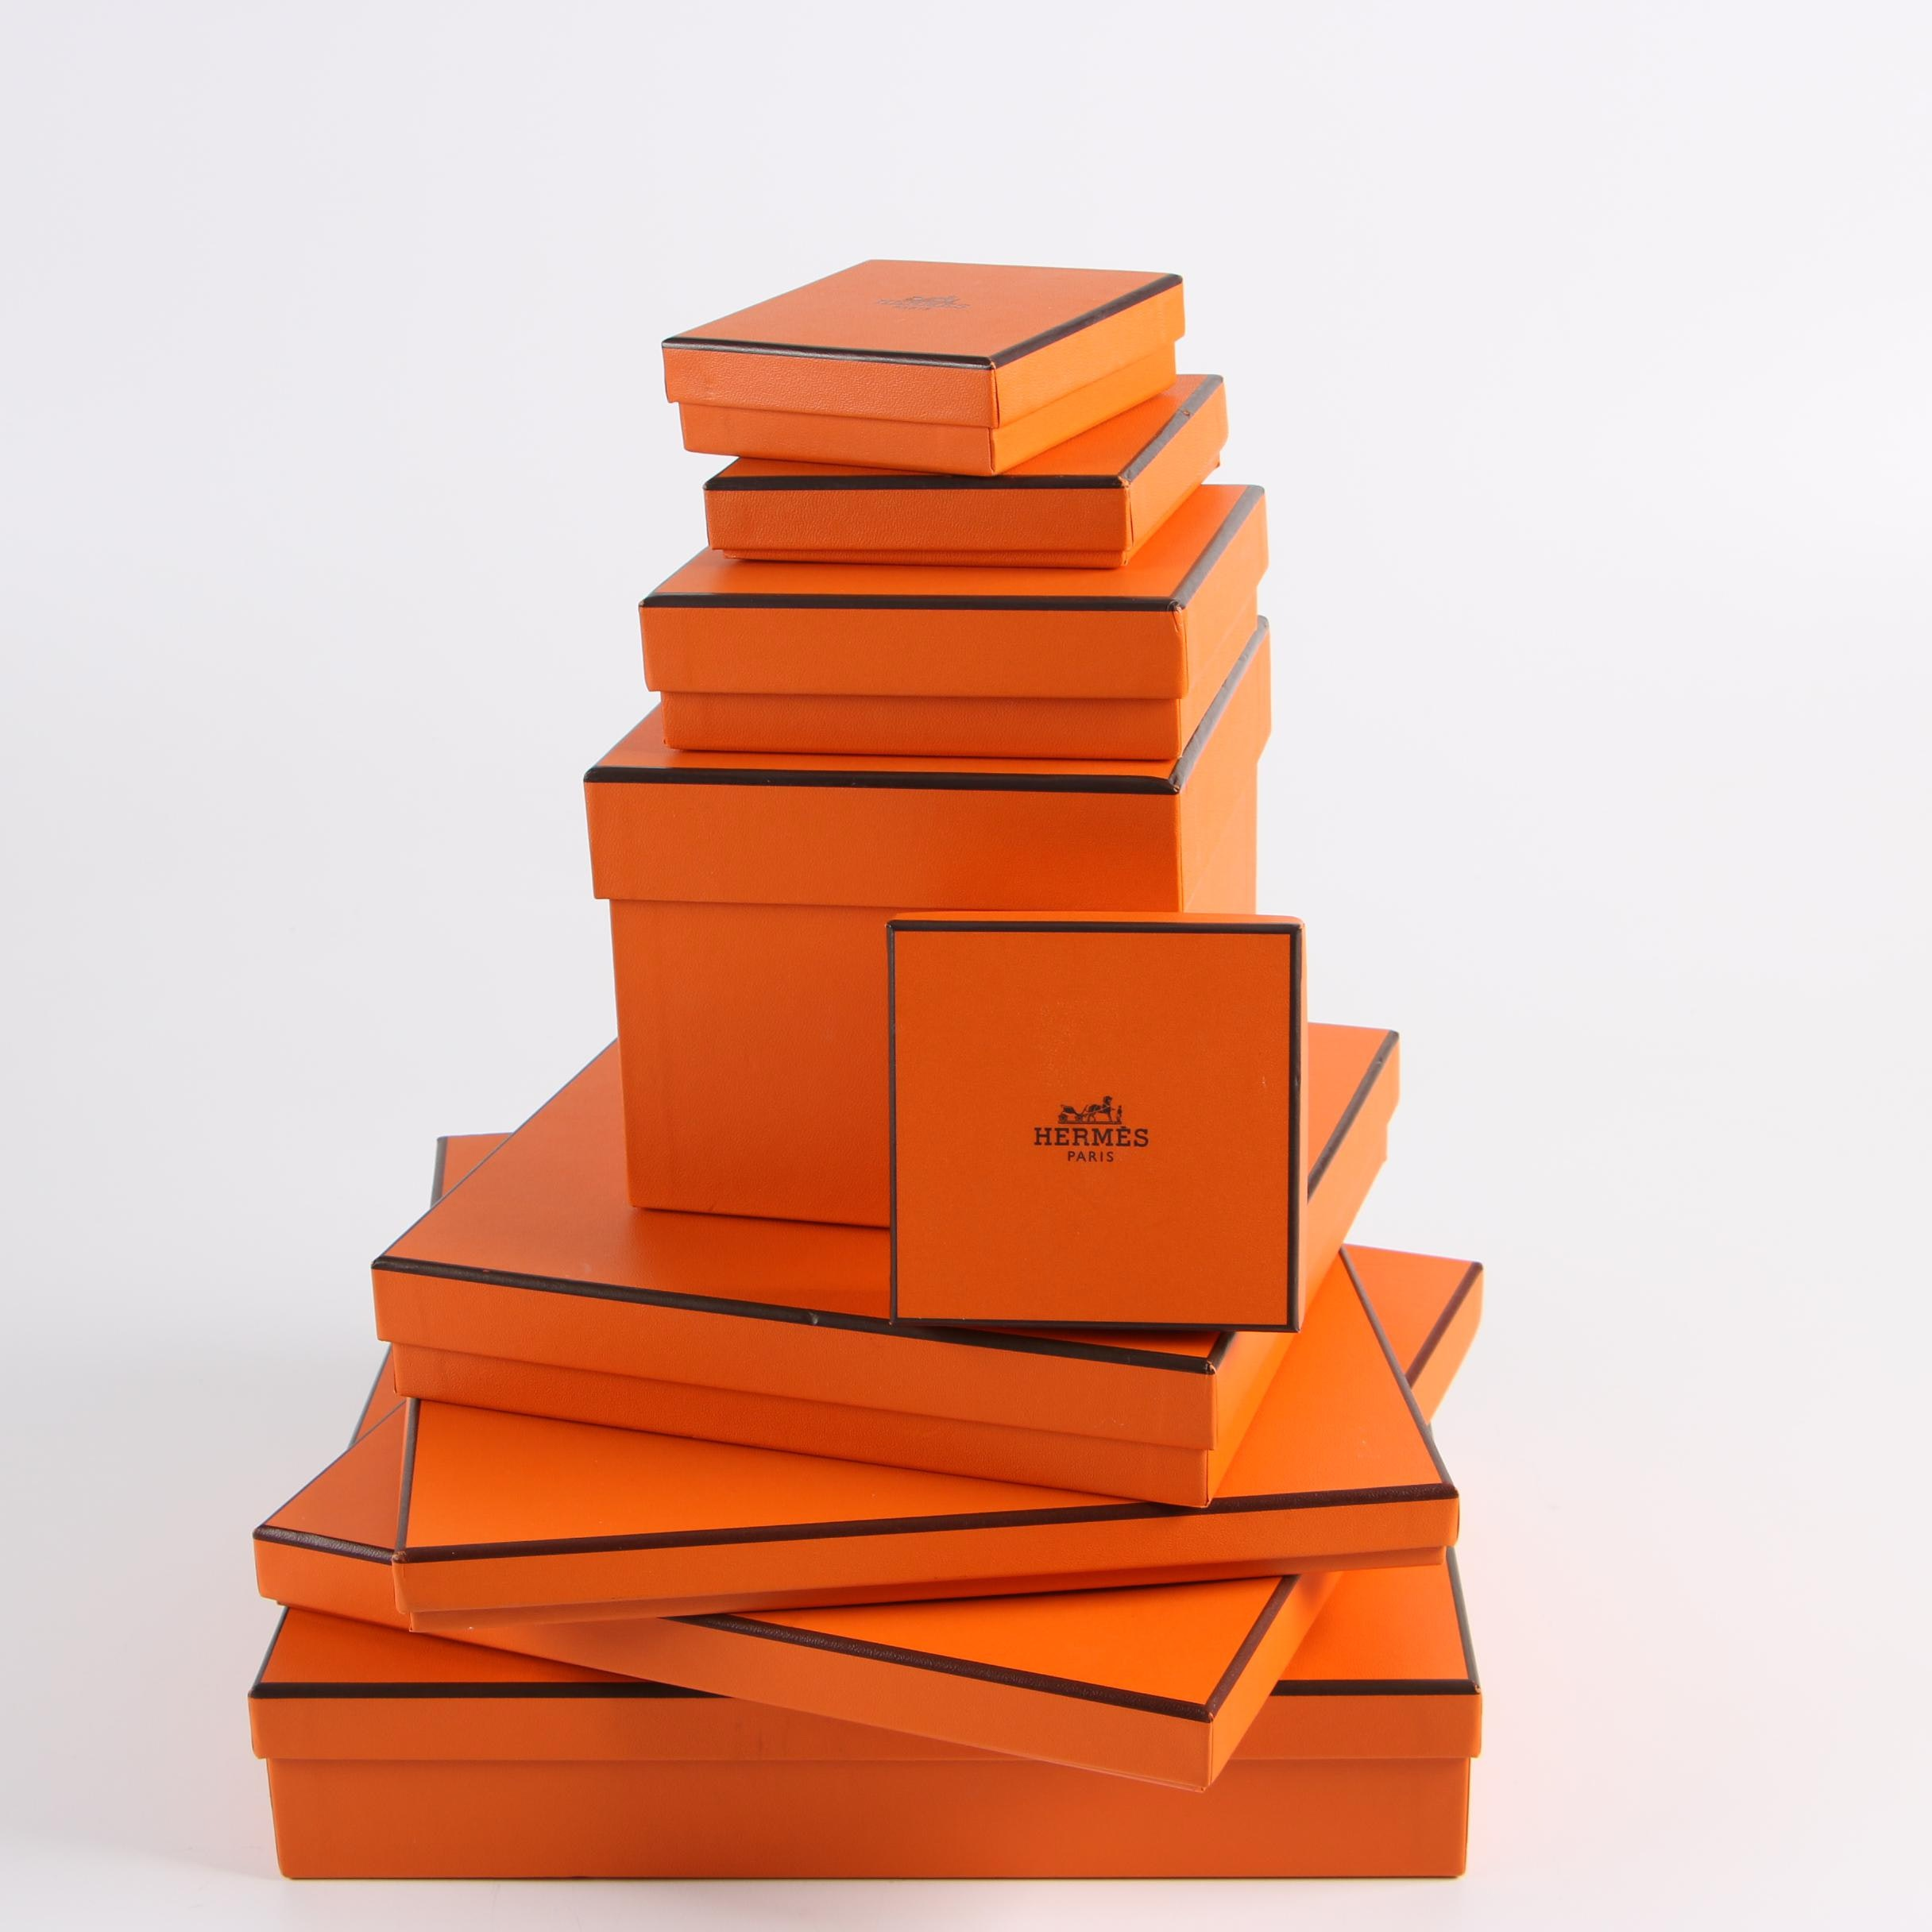 Hermès Gift Boxes Including Ribbons